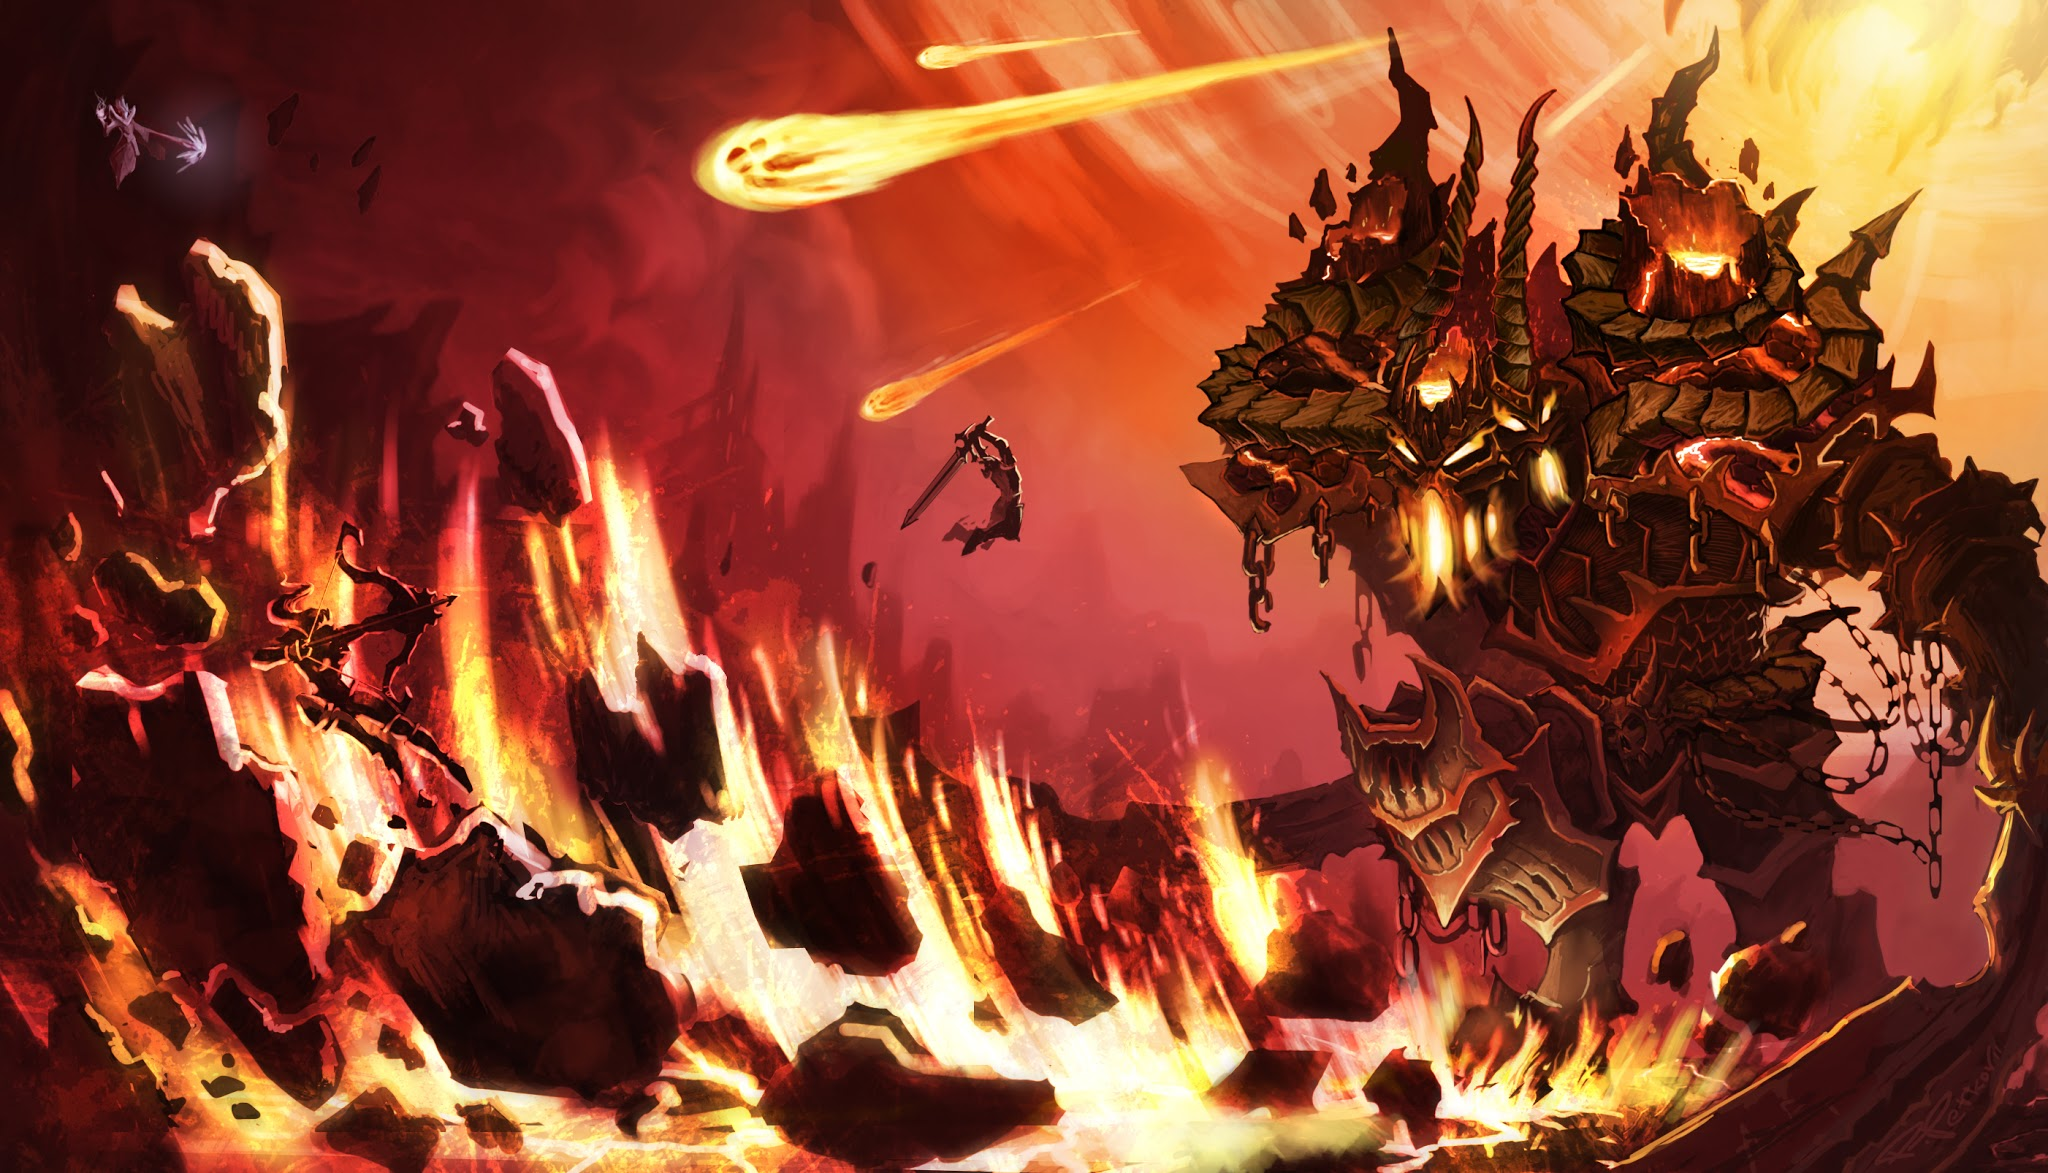 Warriors Attacking A Lava Monster Anime